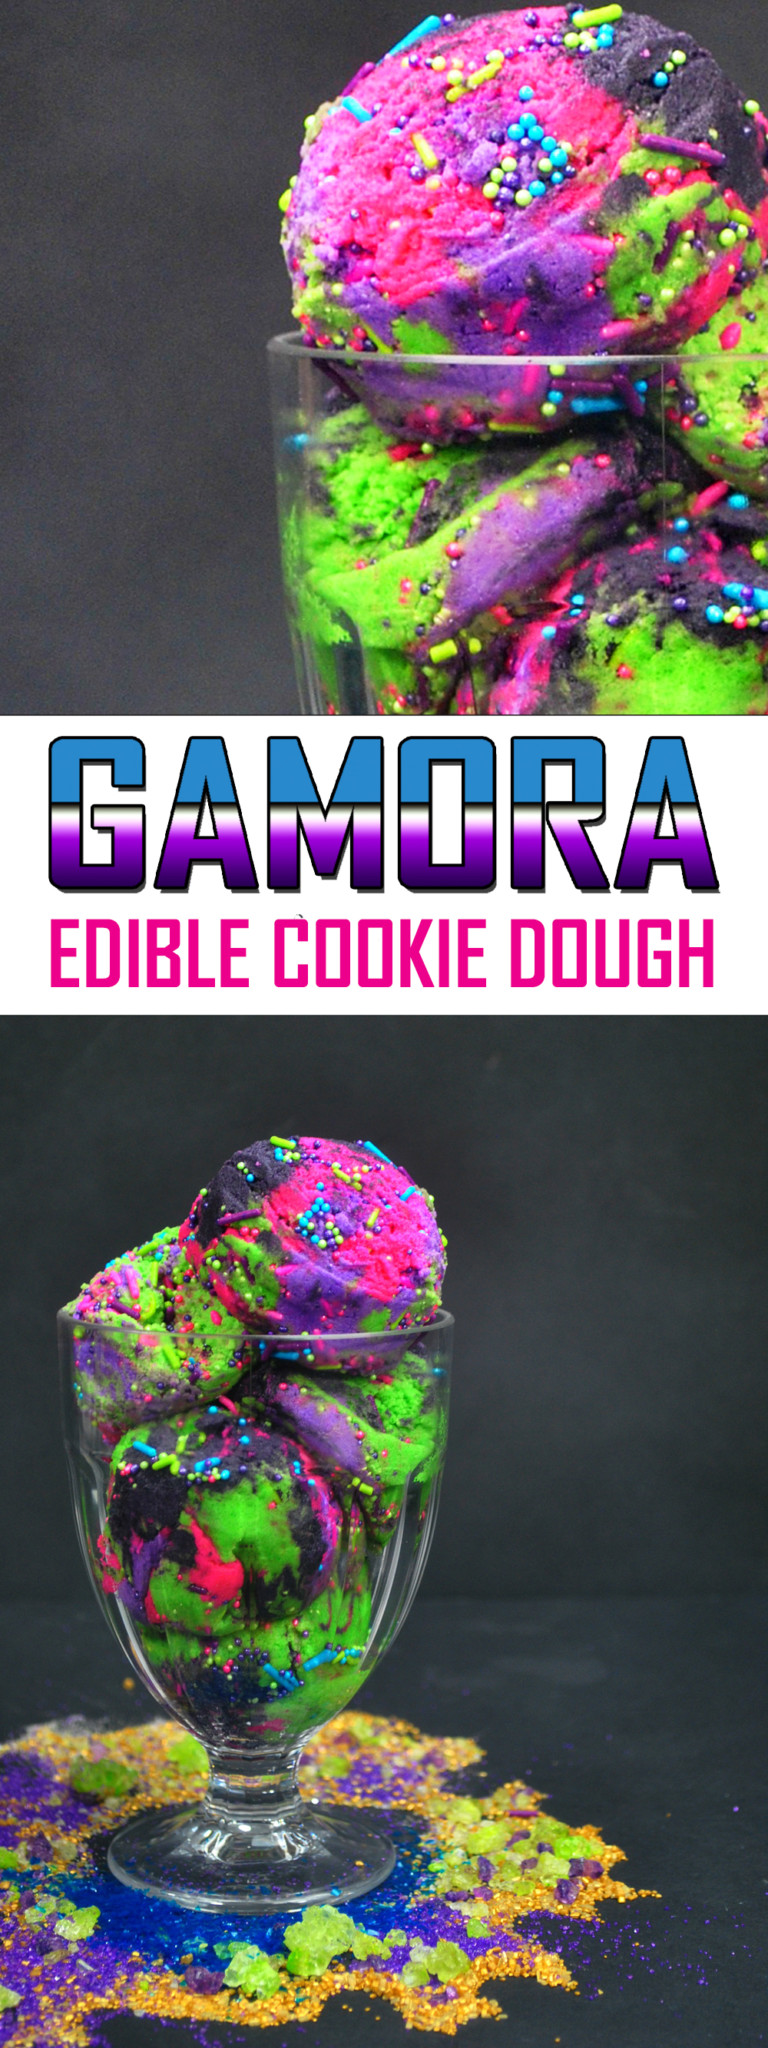 Gamora Edible Cookie Dough